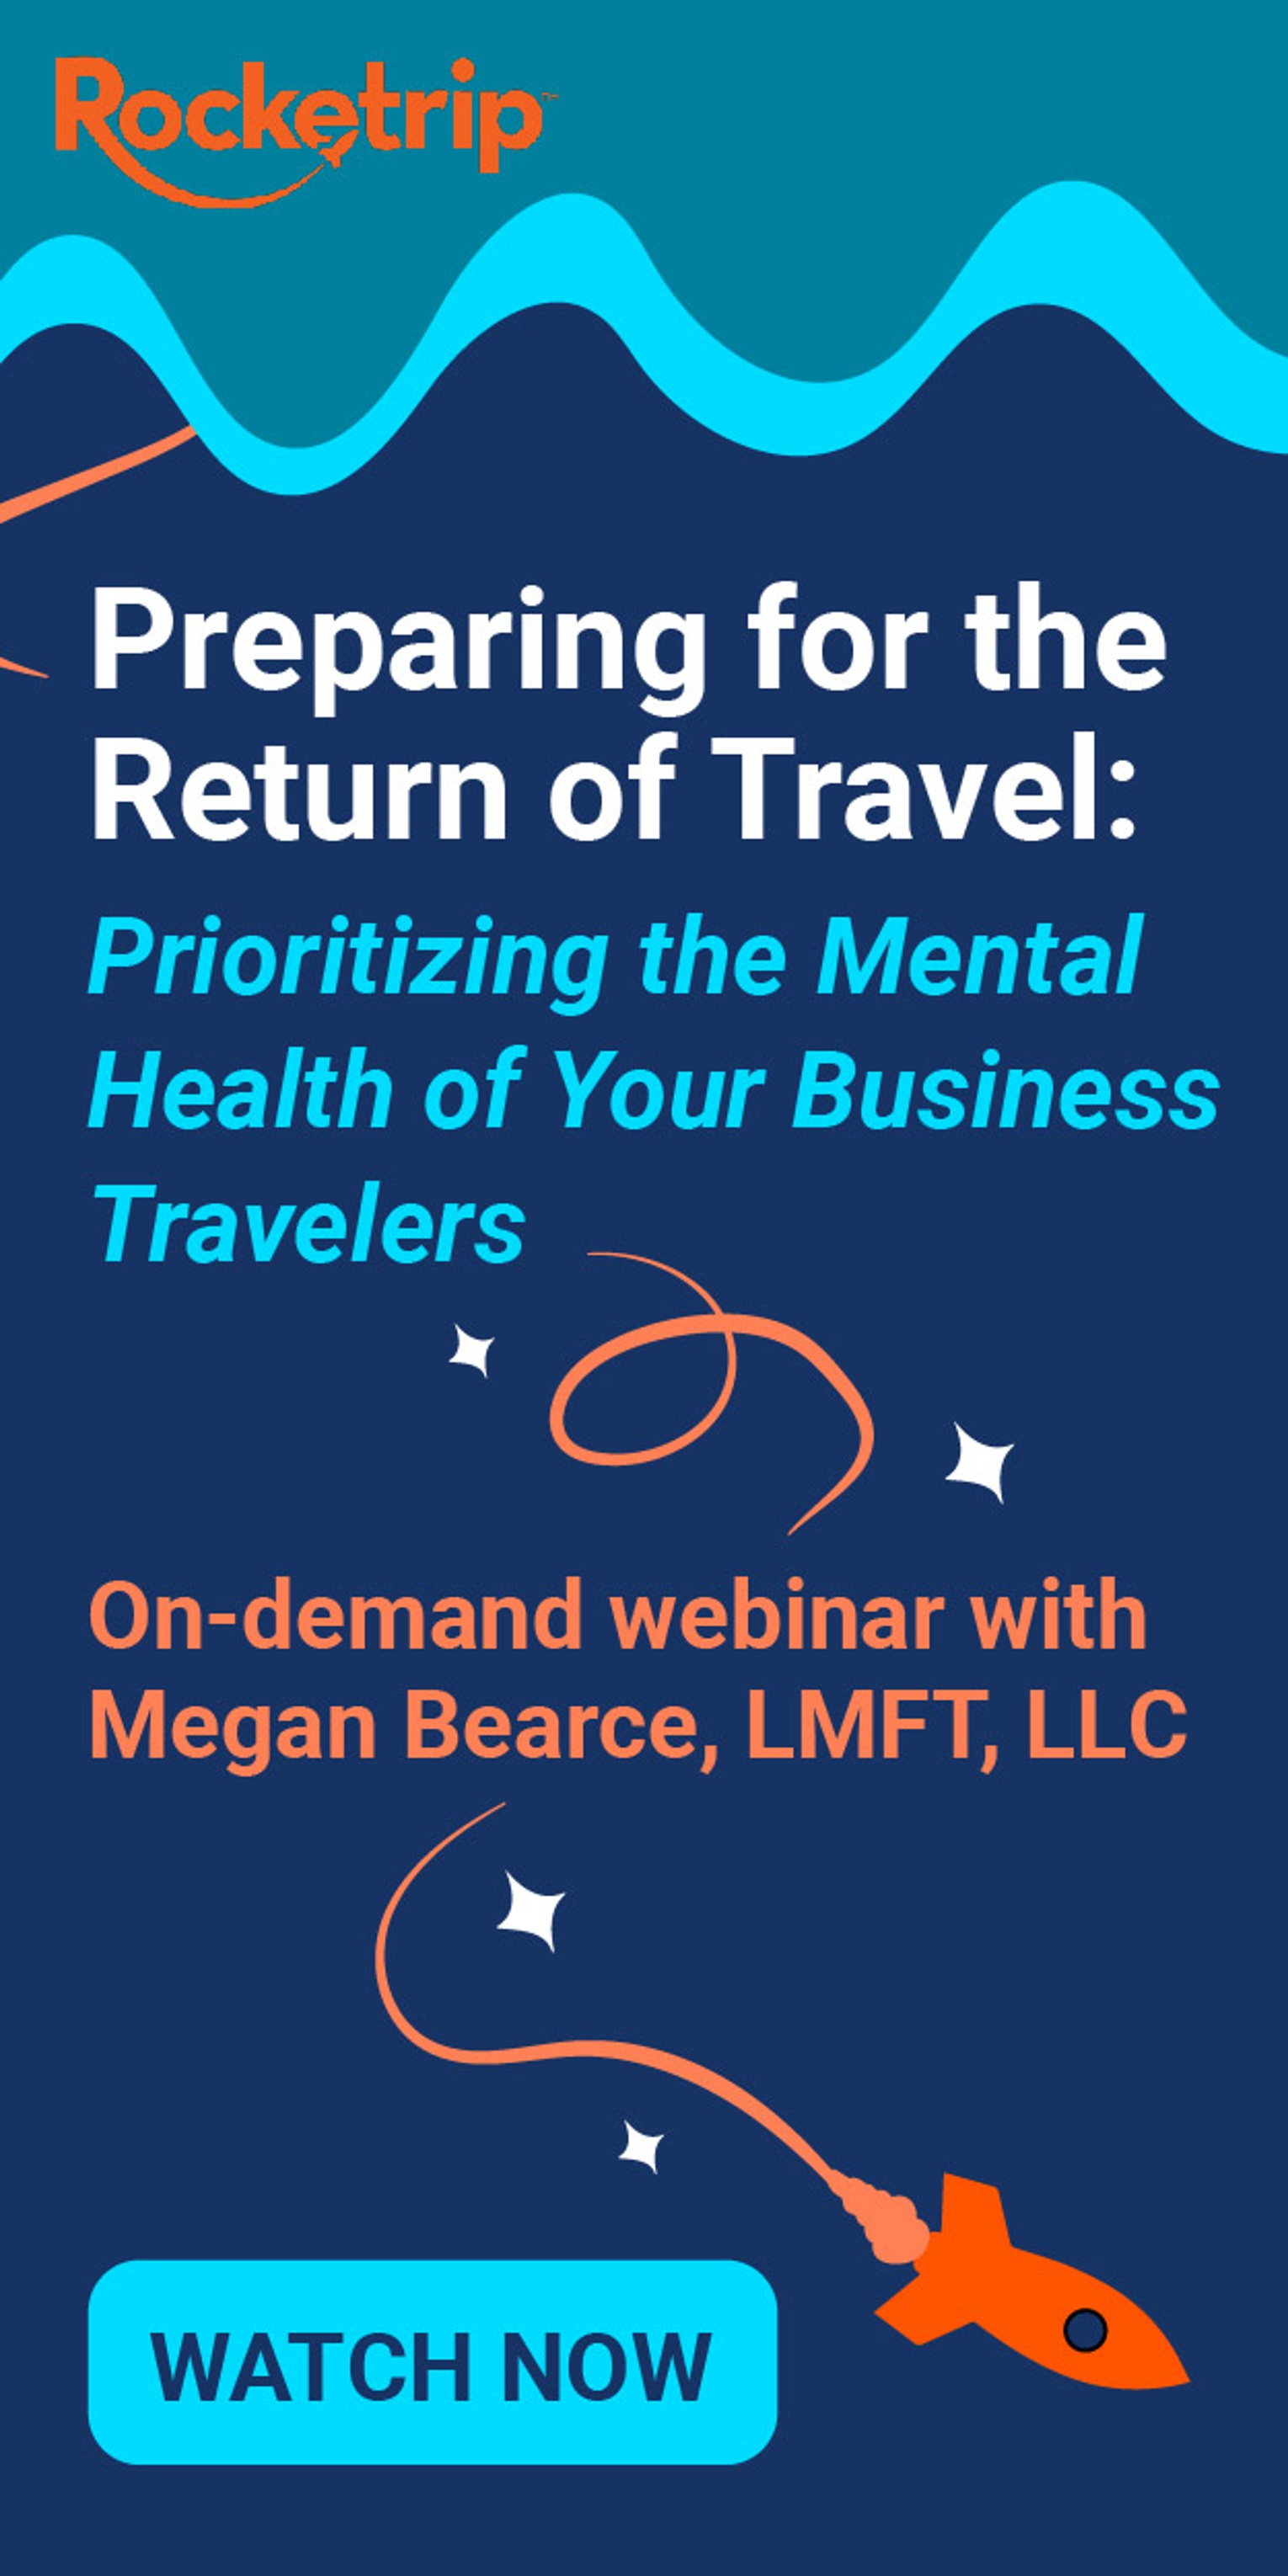 Prioritizing the Mental Health of Your Business Travelers